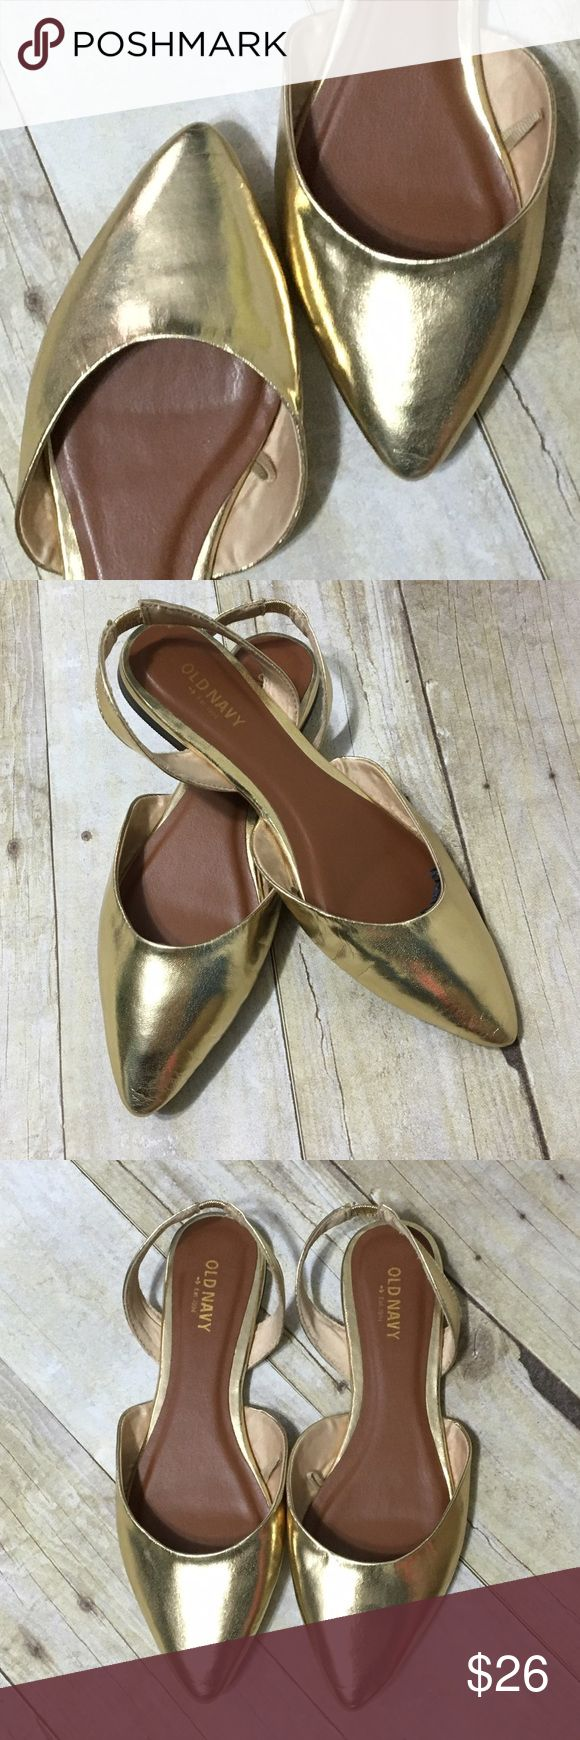 NEW!! Old Navy faux leather golden slingback flats NEW!! Old Navy faux leather golden slingback flats, sz. 6. Old Navy Shoes Flats & Loafers